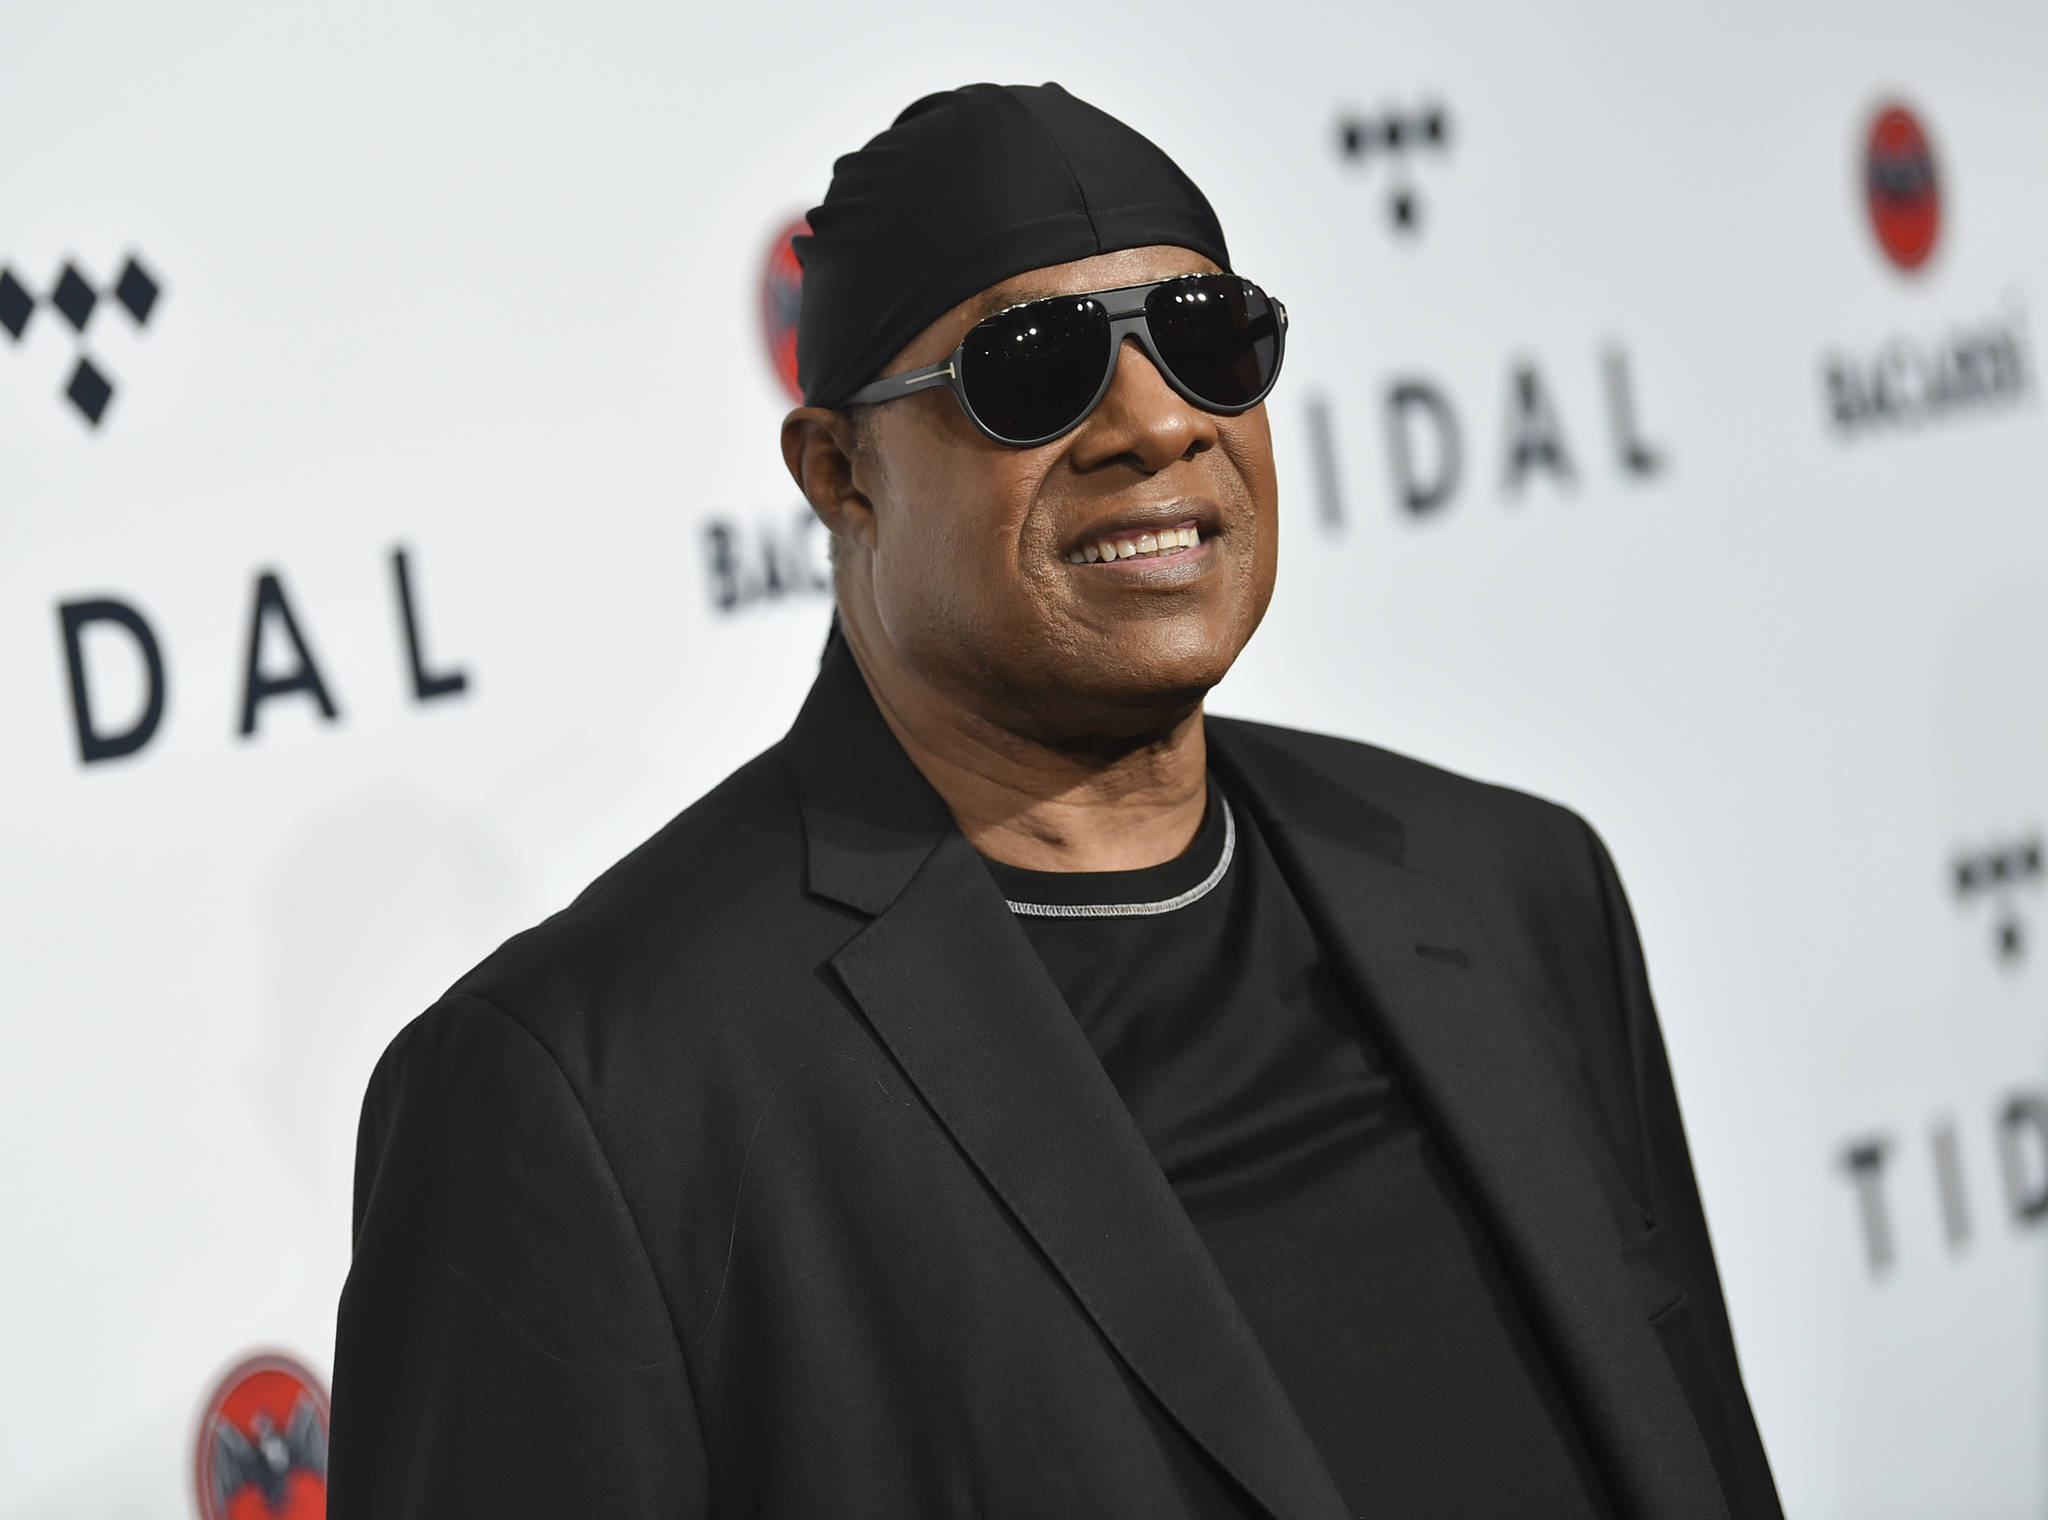 Stevie Wonder attends the TIDAL X: Brooklyn 3rd Annual Benefit Concert in New York in October 2017. Do you know how old he was when he made his musical debut? (Photo by Evan Agostini/Invision/AP, File)